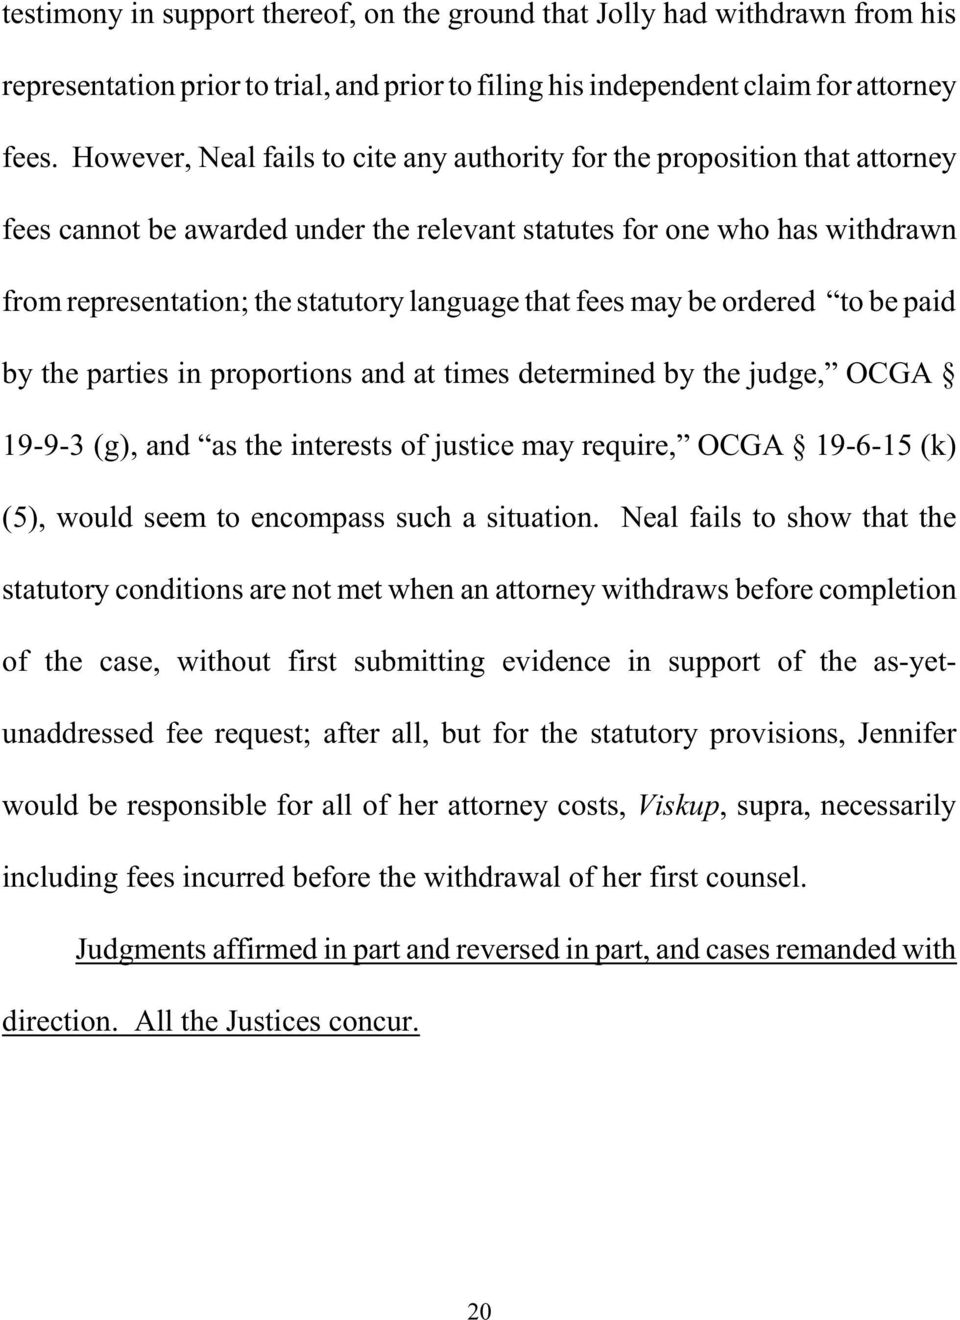 that fees may be ordered to be paid by the parties in proportions and at times determined by the judge, OCGA 19-9-3 (g), and as the interests of justice may require, OCGA 19-6-15 (k) (5), would seem